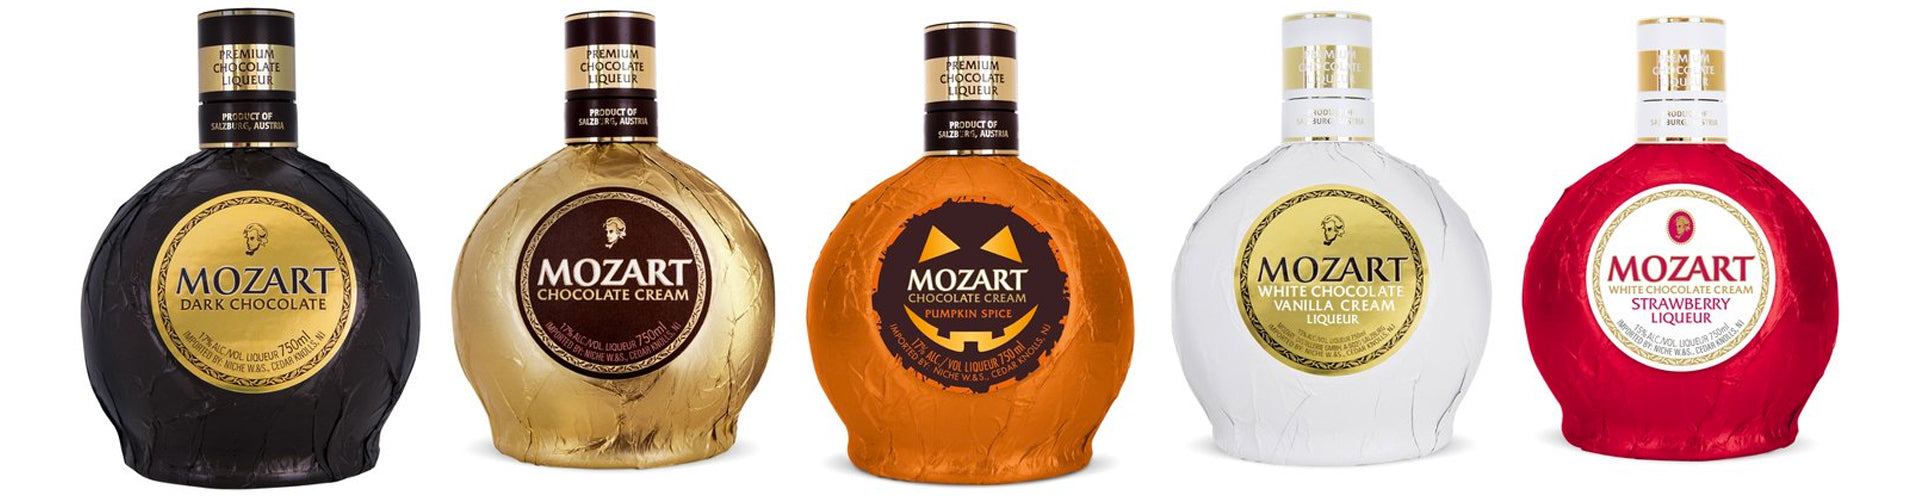 A range of Mozart Chocolate Cream Liqueurs from Austria